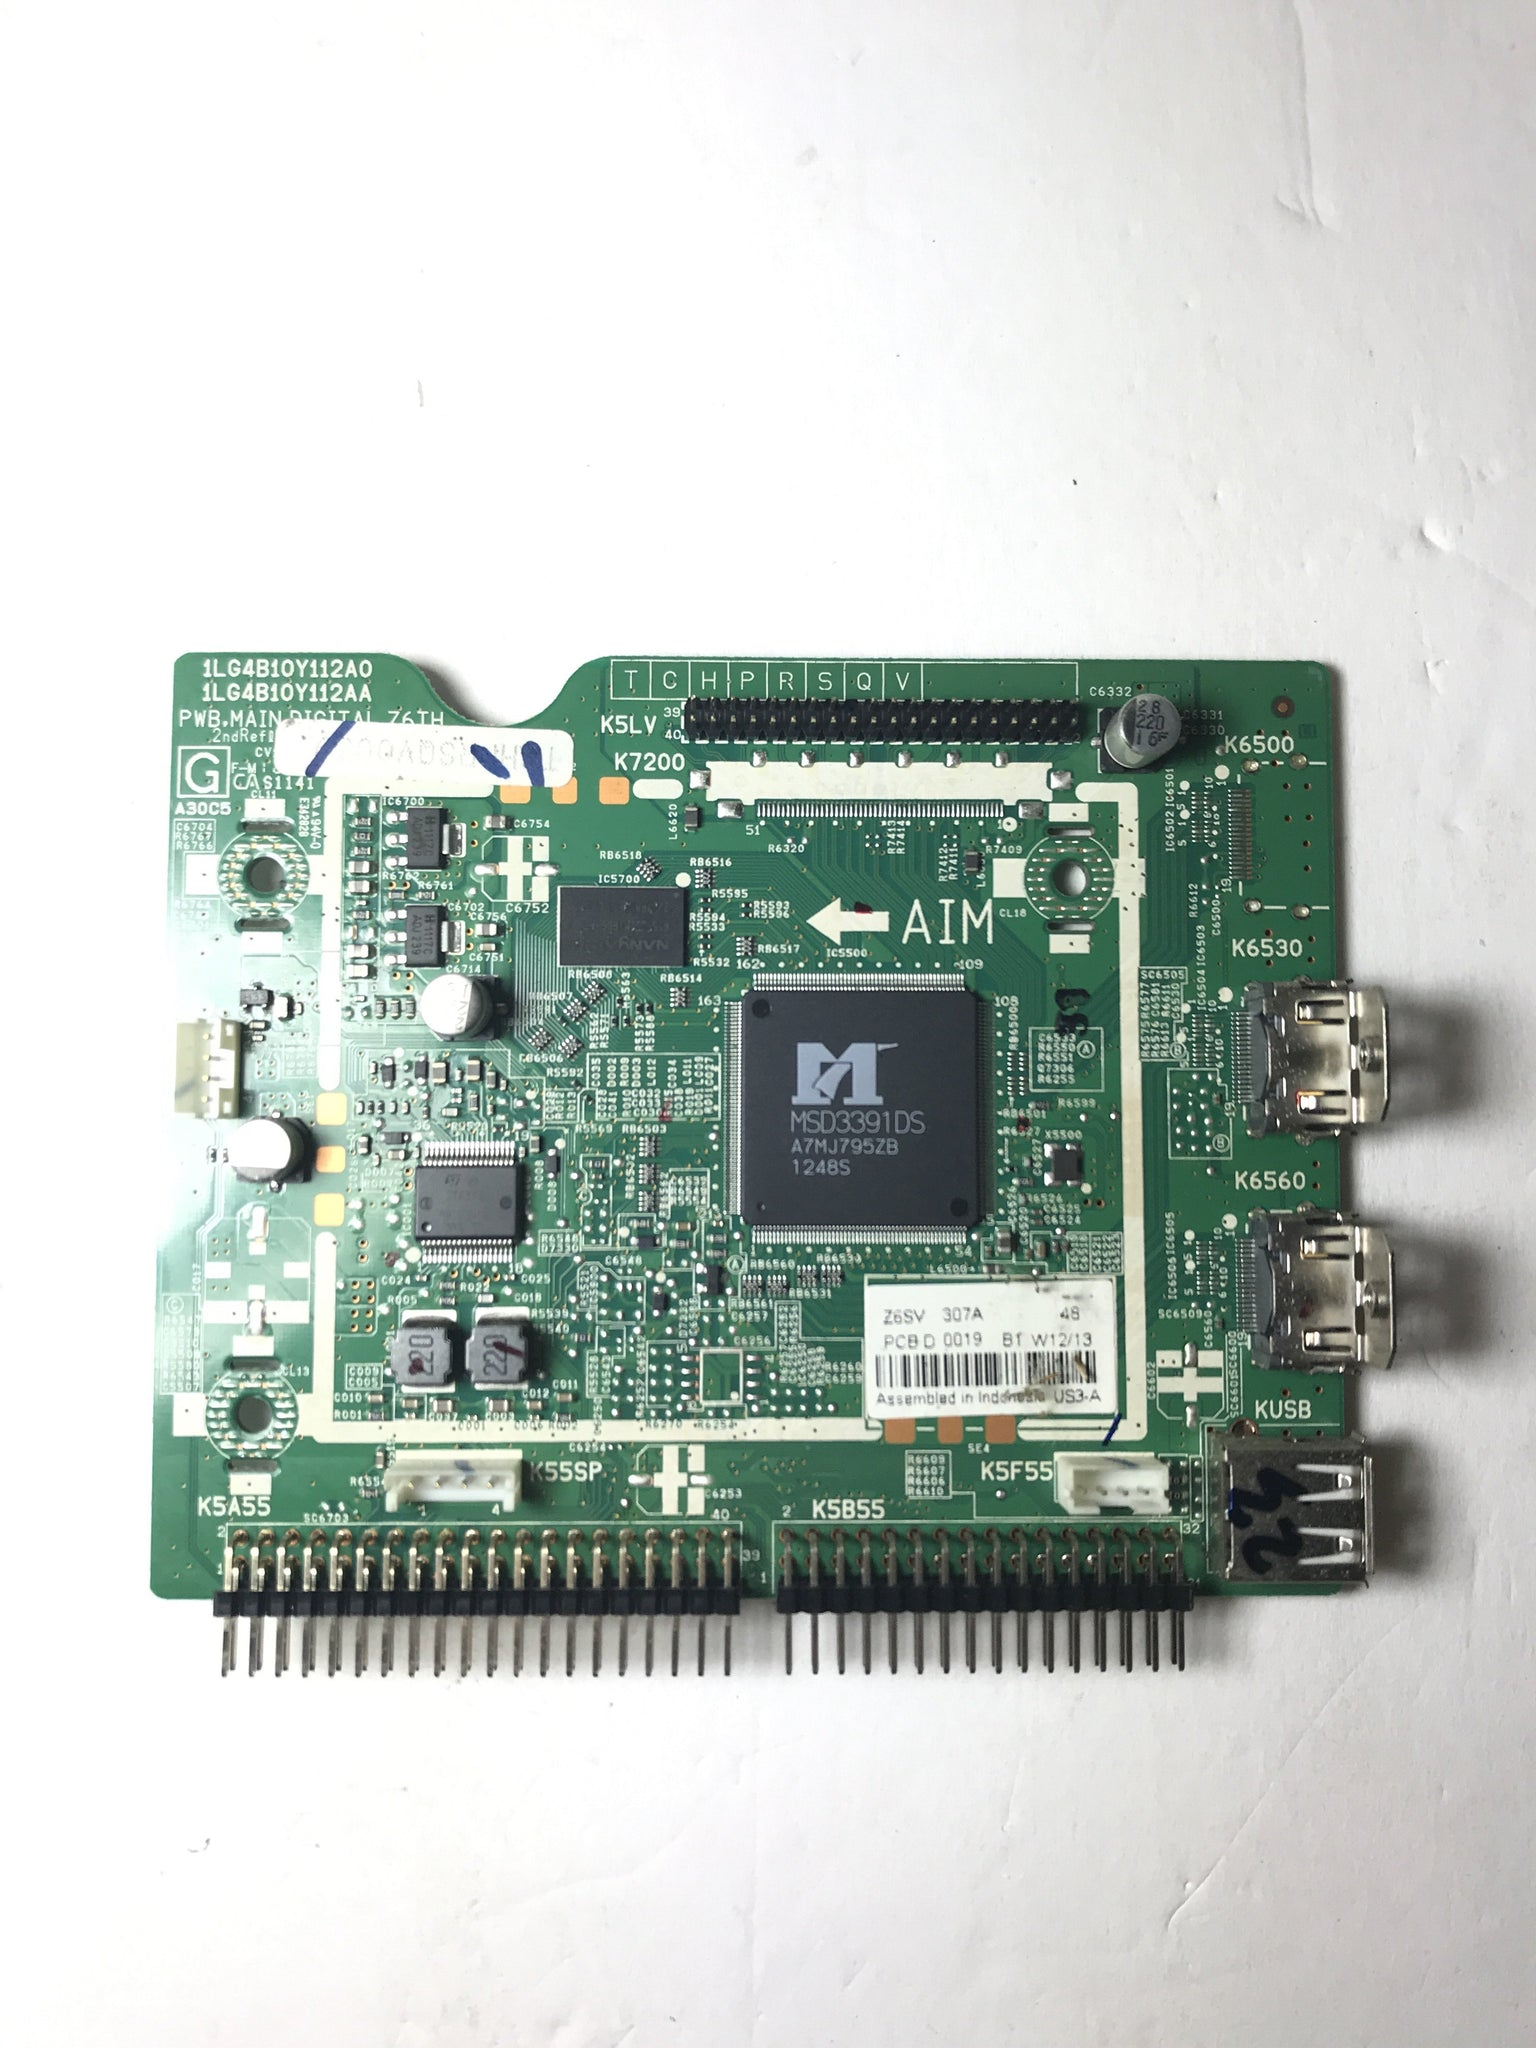 Sanyo 1LG4B10Y112A0 Z6SV Digital Main Board for DP39E63 P39E63-00